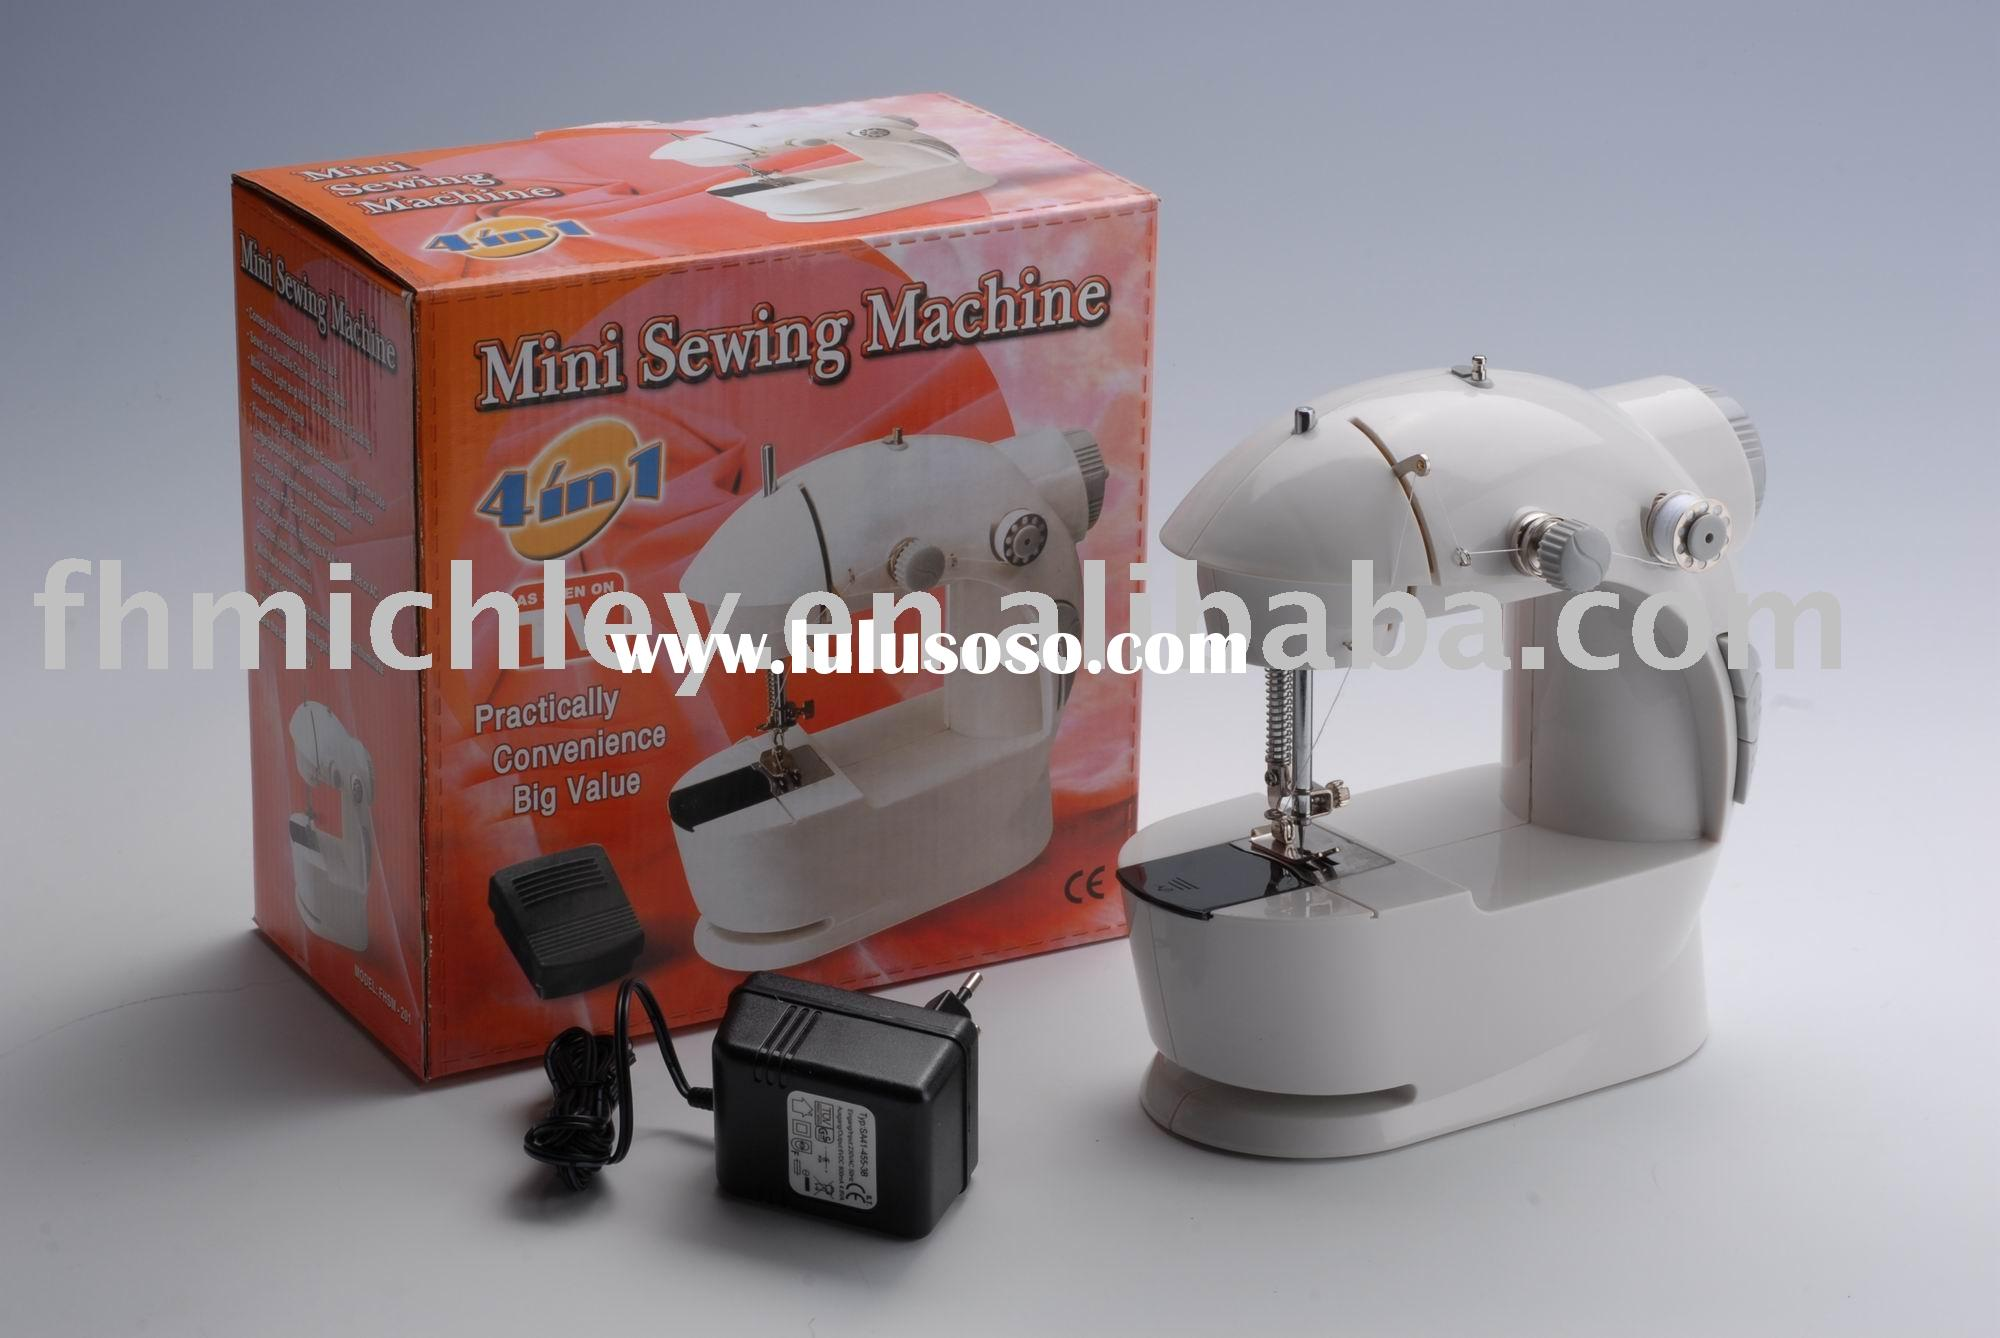 FHSM-201as seen on tv! 4 in 1 mini electrical sewing machine